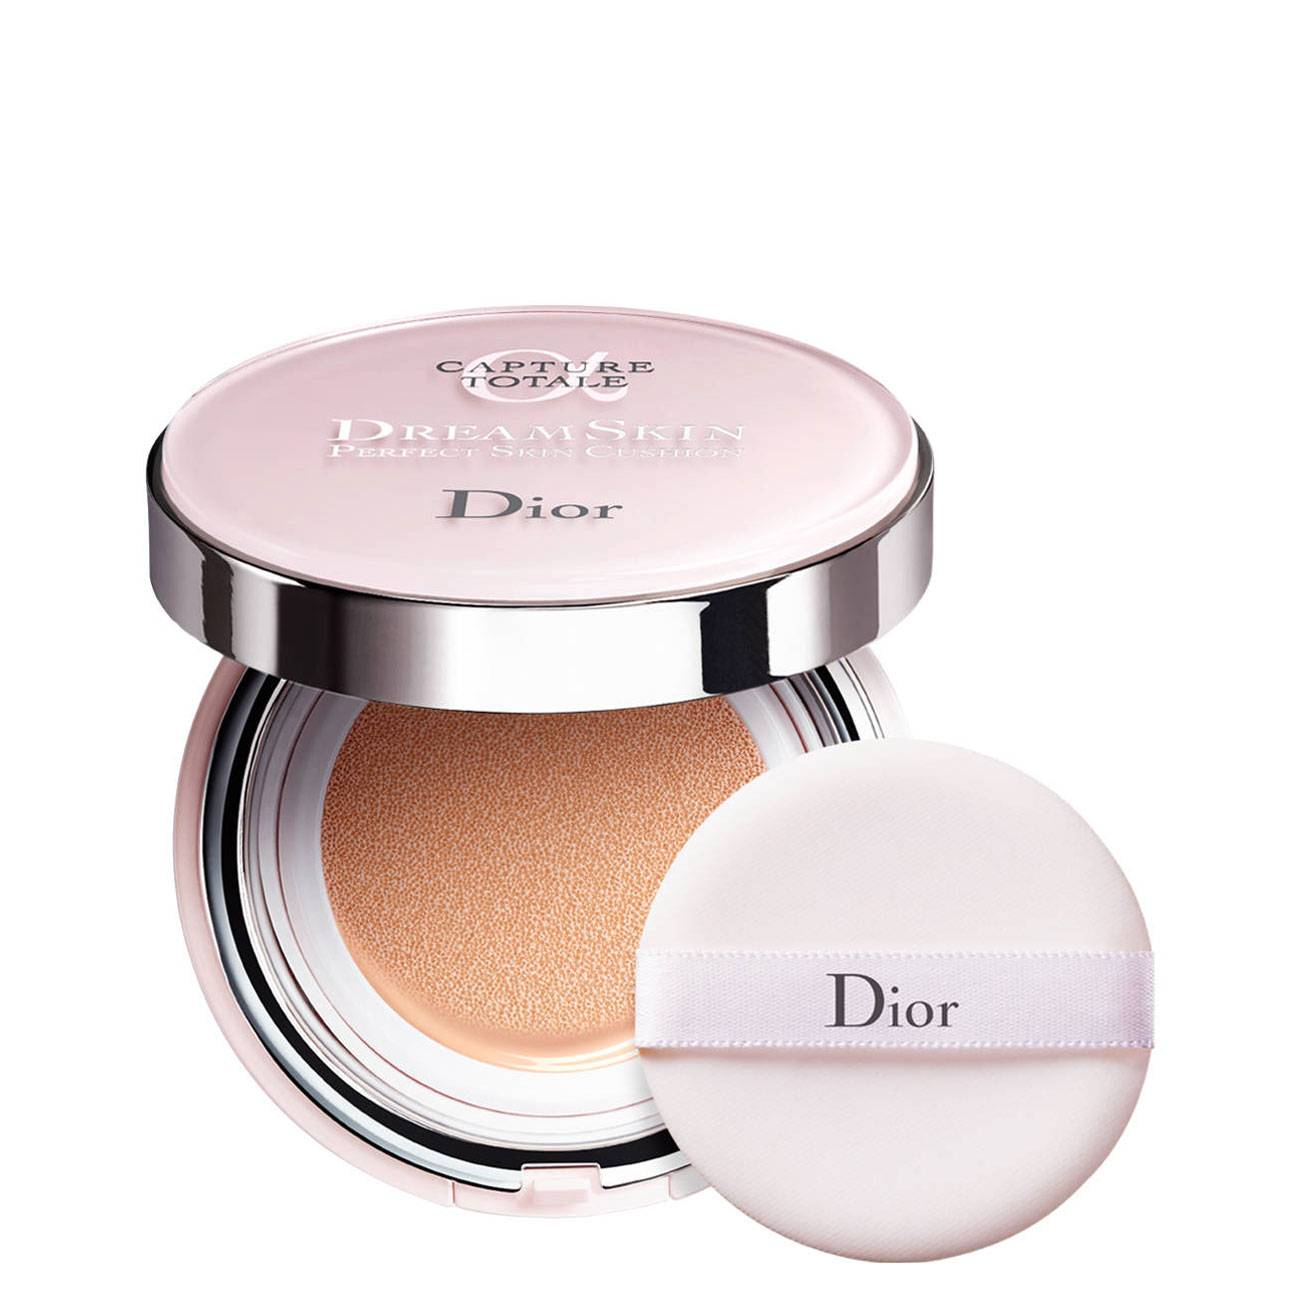 Dreamskin Perfect Skin Cushion Spf 50 30 Grame Dior imagine 2021 bestvalue.eu